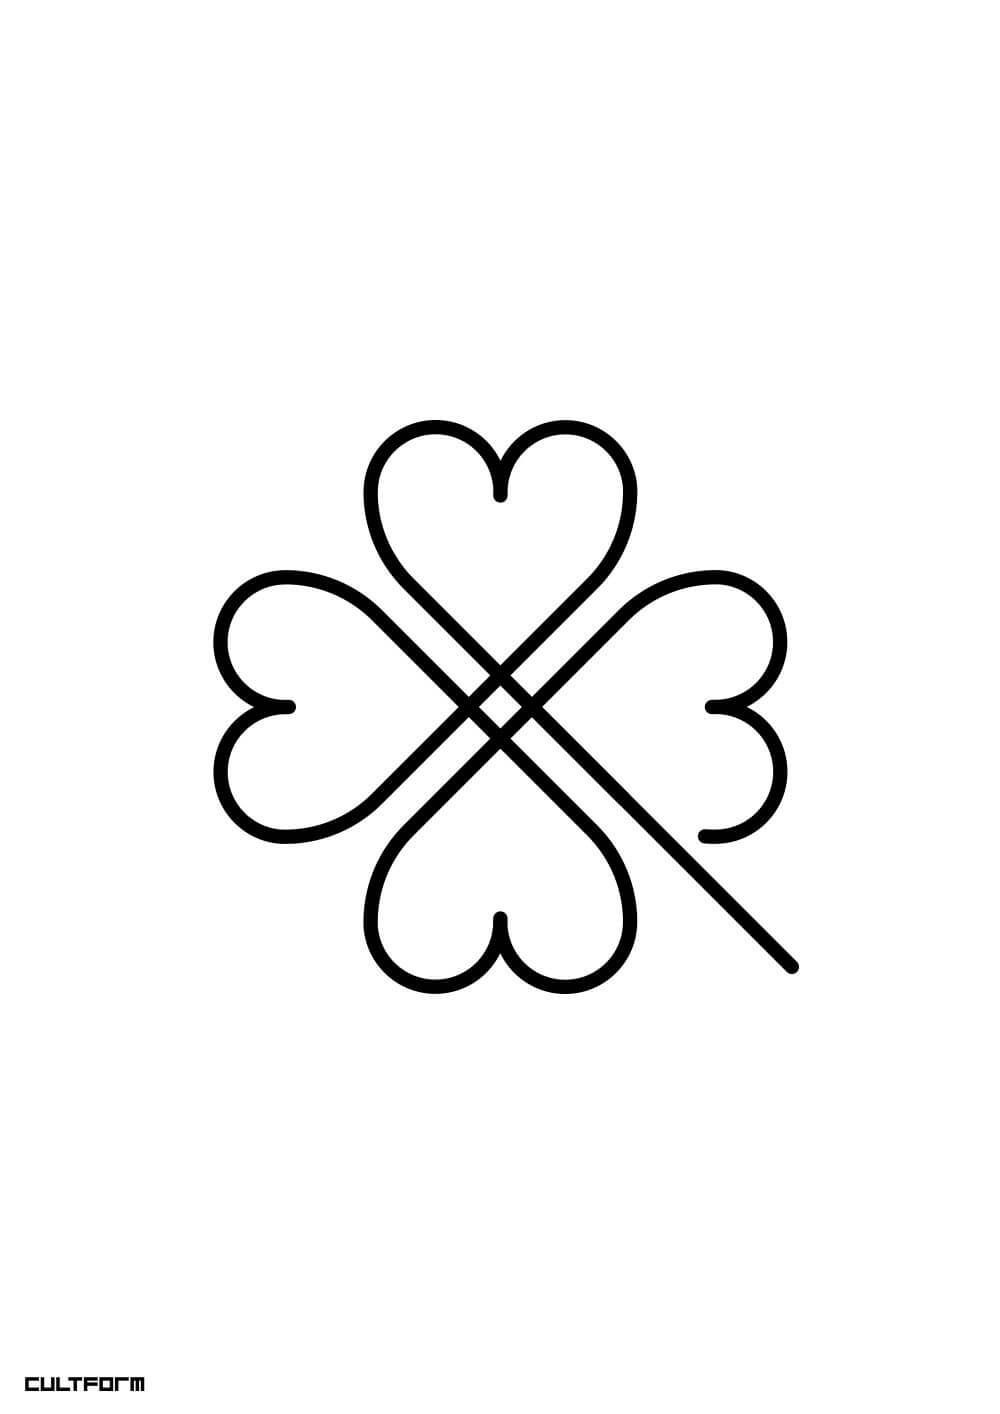 Cultform Download Form Grafik Kleeblatt Linie Zeitlos Zum Gluck In Kleeblatt Grafik Happy New Y Shamrock Tattoos Clover Tattoos Four Leaf Clover Tattoo